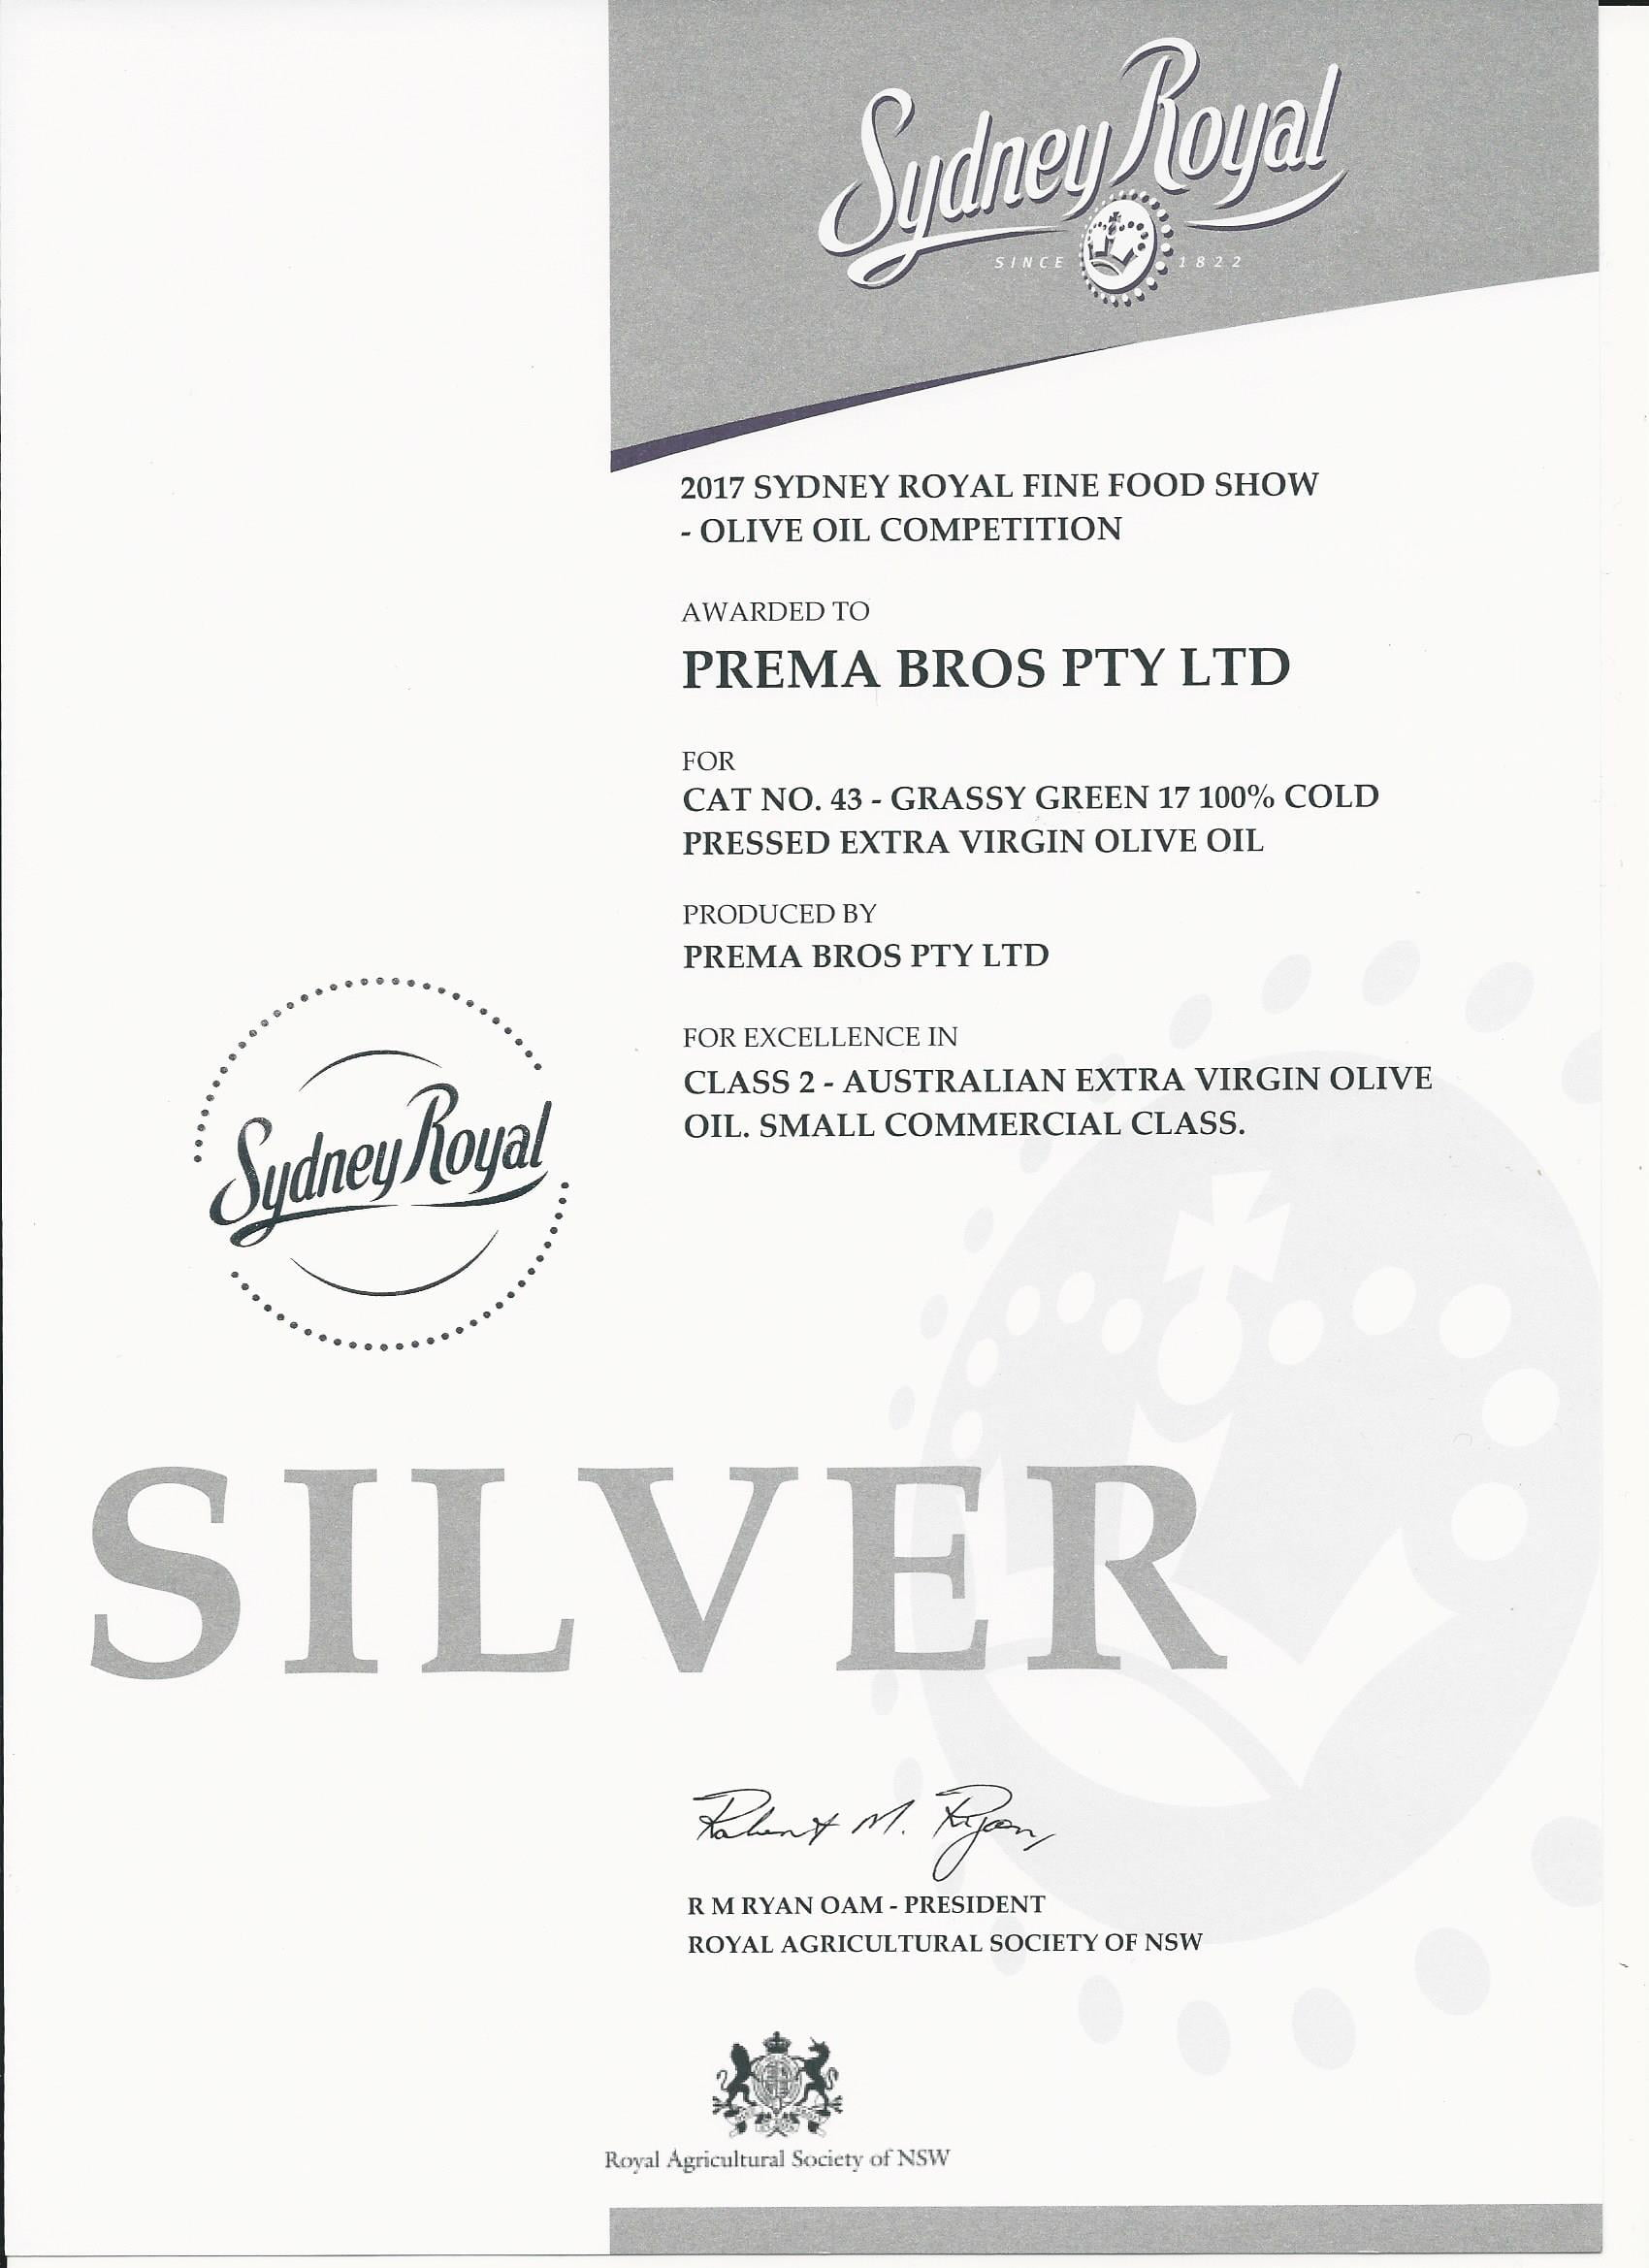 Sydney Royal Silver Award